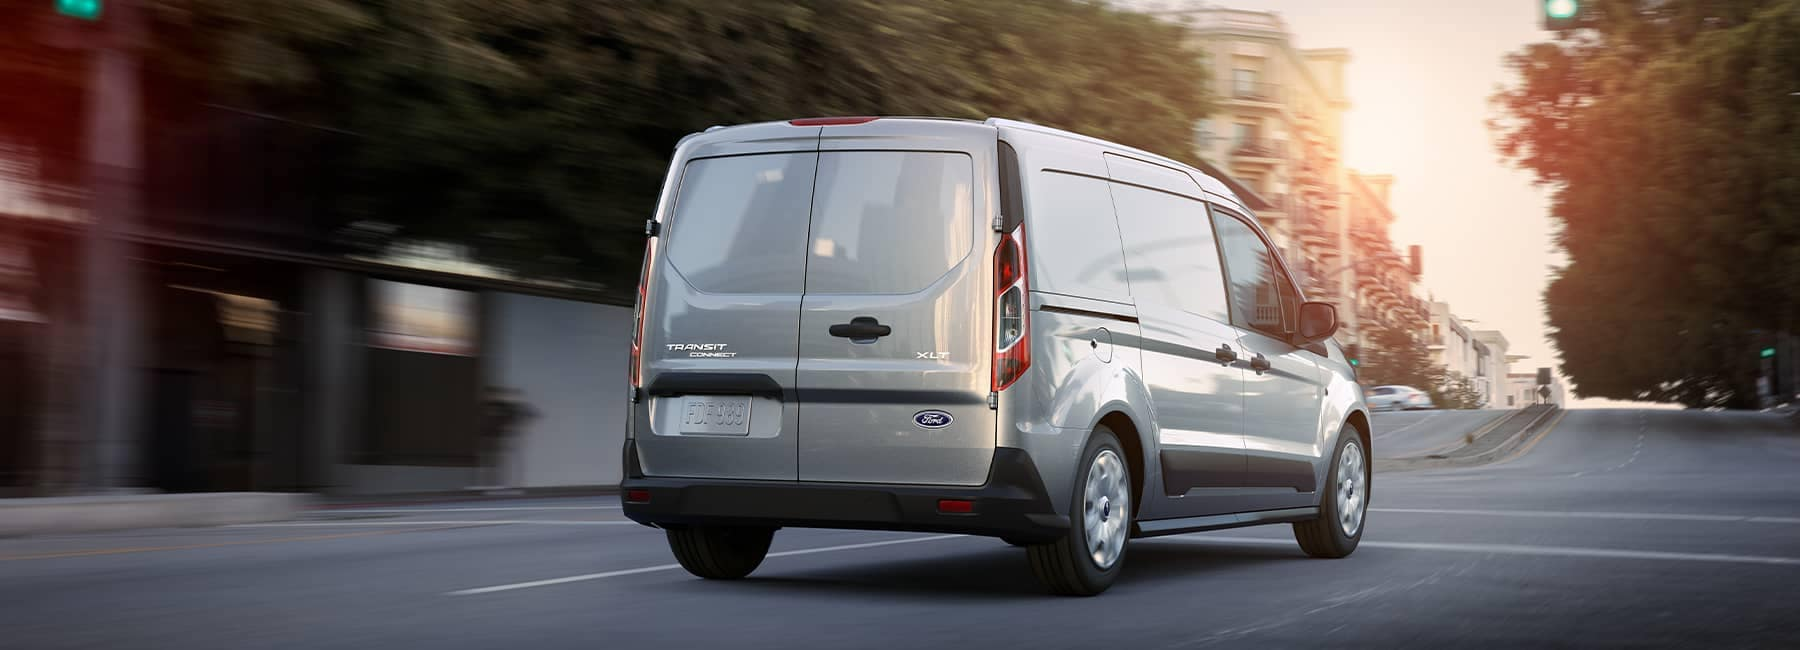 White 2021 Ford Transit driving away on a suburban street